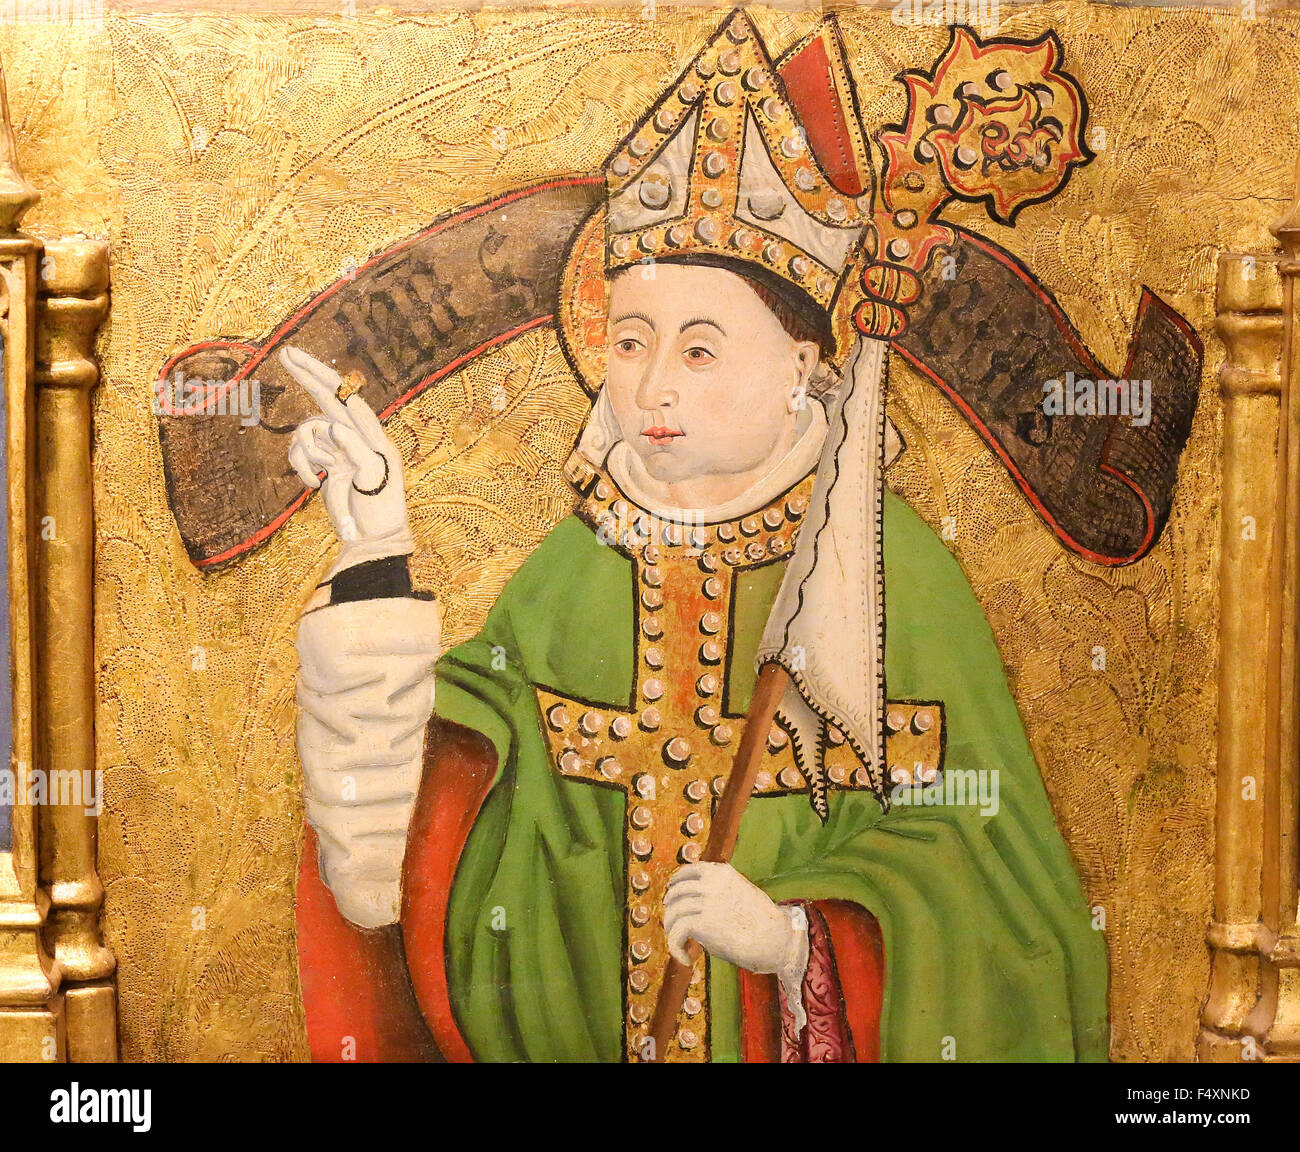 Painting of a bishop with a mitre and crozier in the Cathedral of Burgos, Castille, Spain - Stock Image